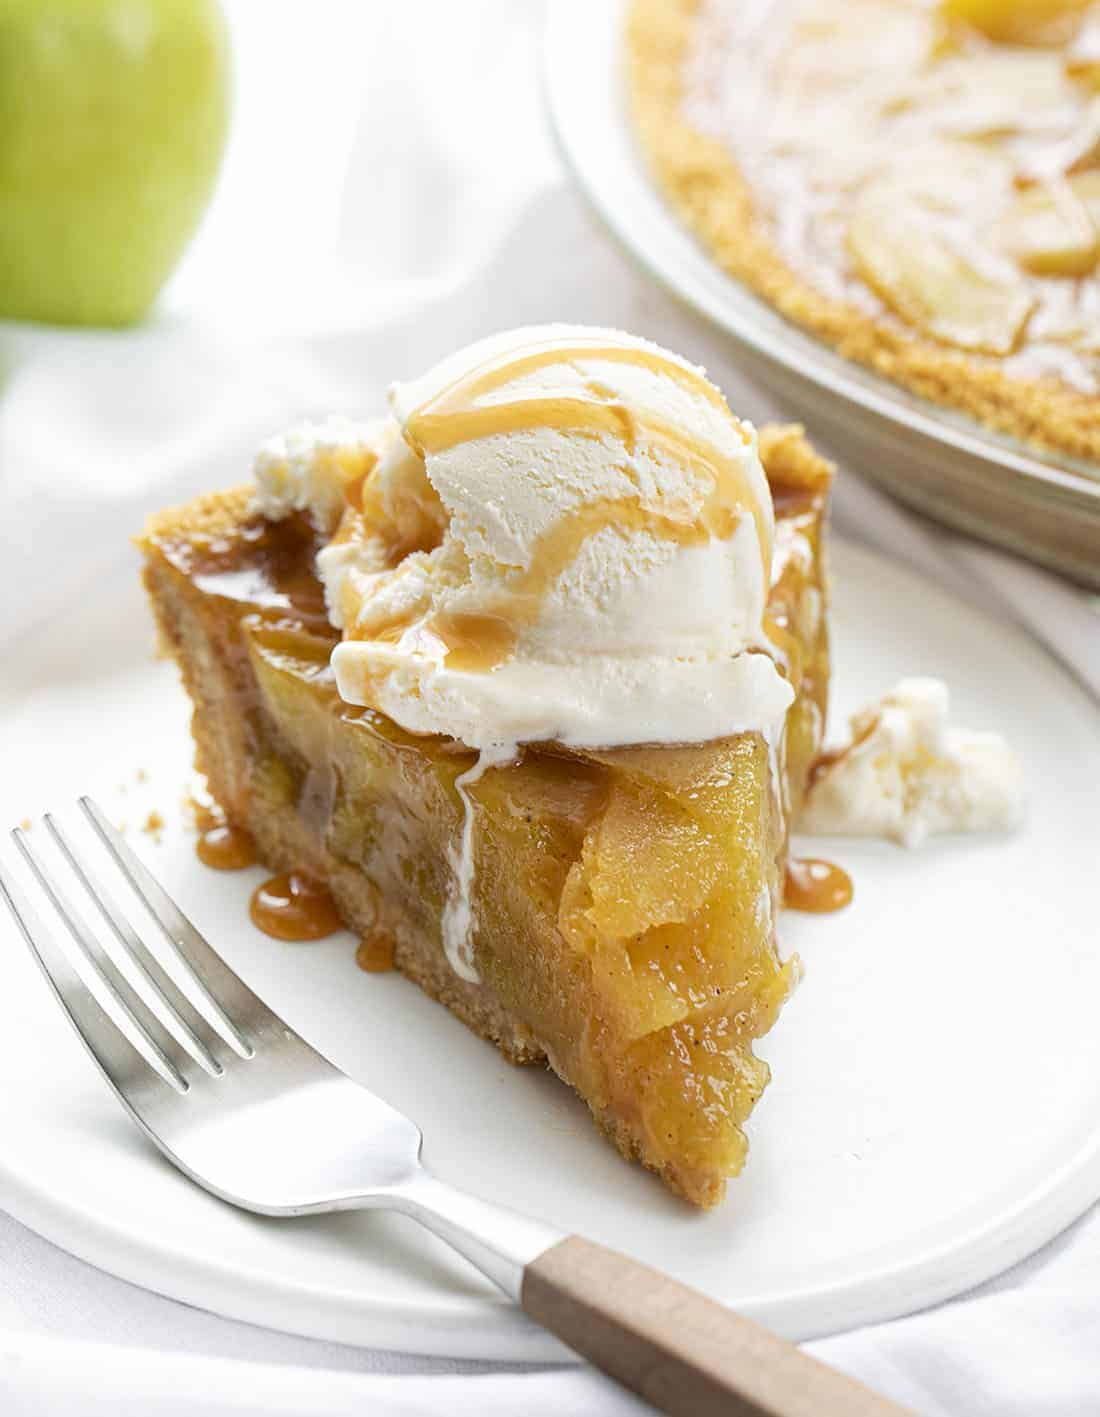 Slice of No Bake Apple Pie on a Plate